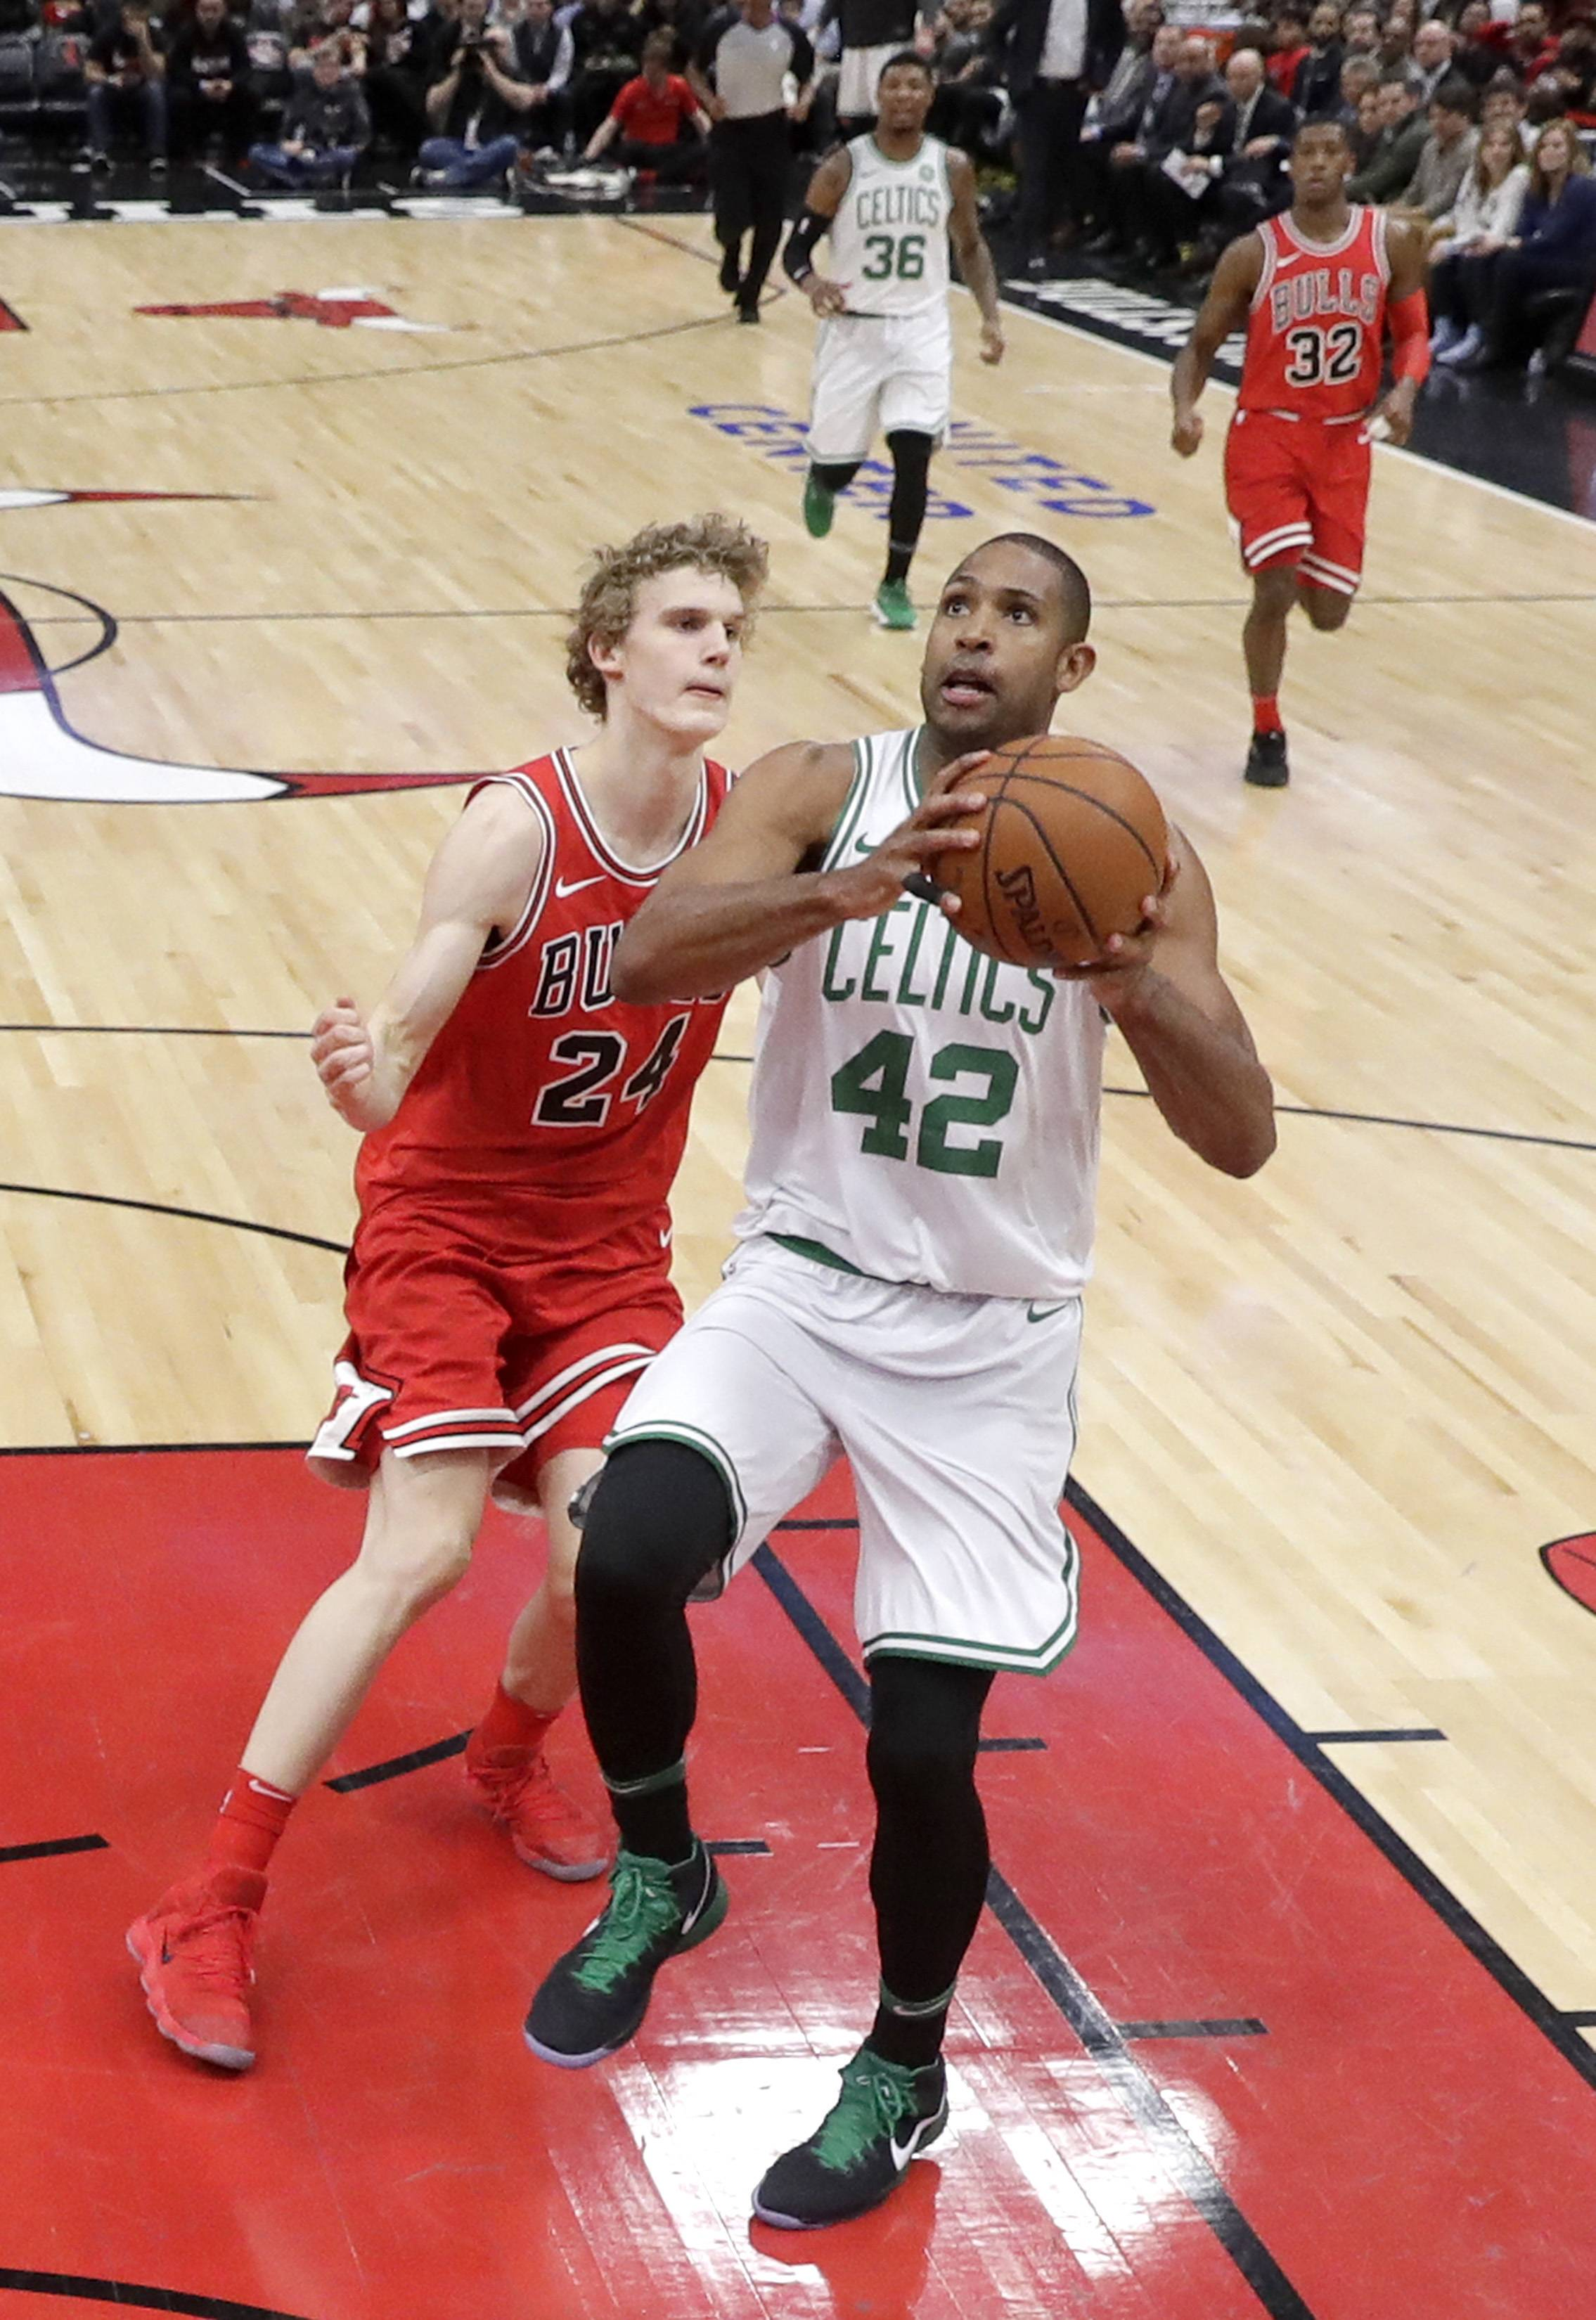 Celtics' revised starting lineup handles Chicago Bulls with ease